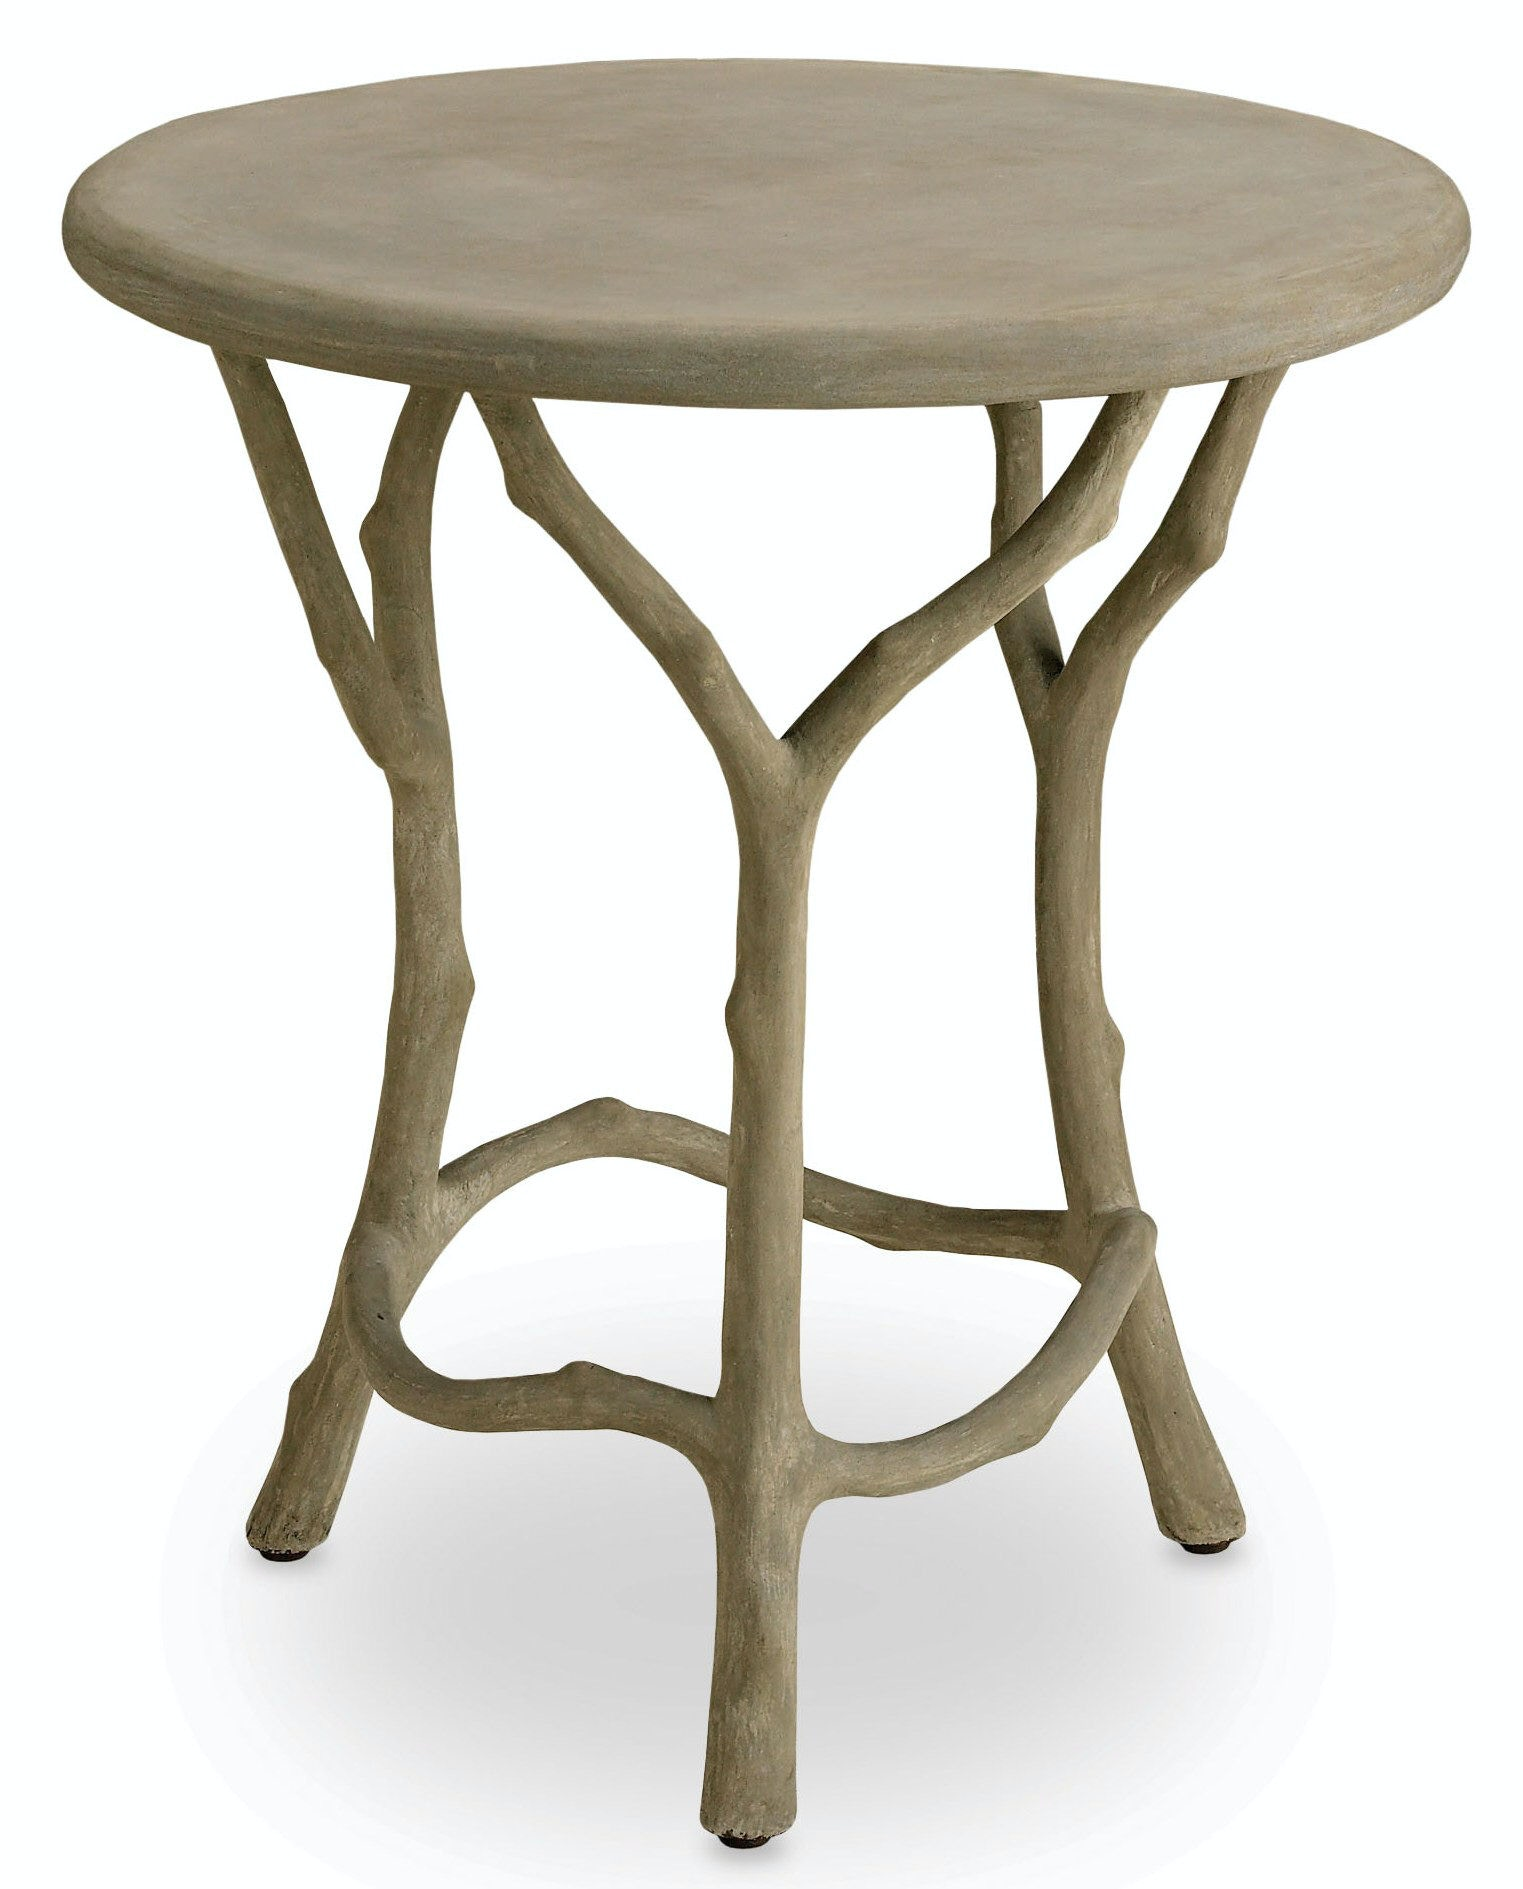 Currey And Company Outdoor/Patio Hidcote Accent Table 2373   Swannu0027s  Furniture   Tyler, TX